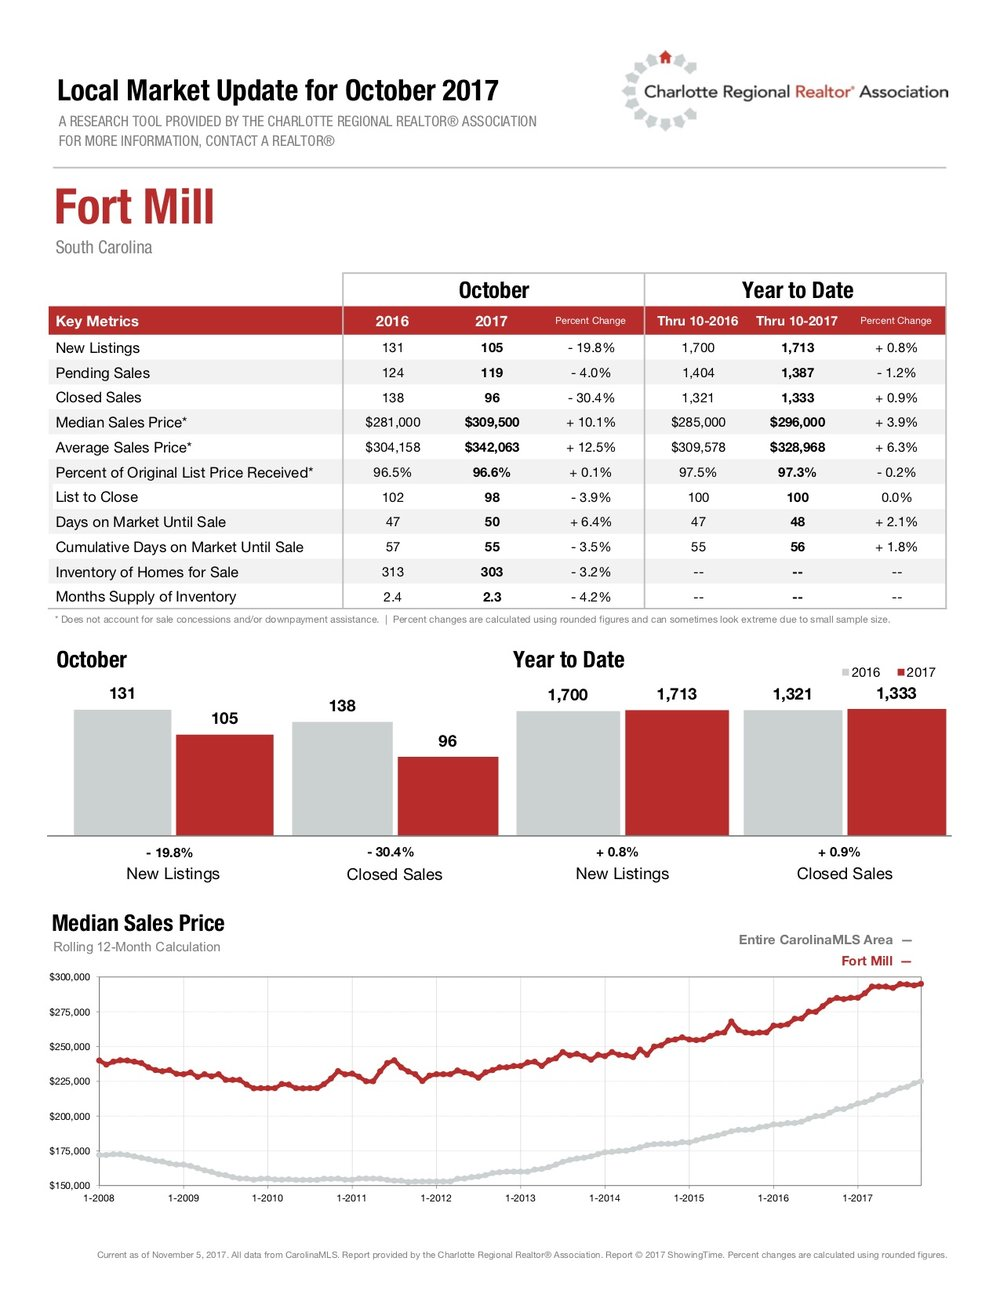 Fort Mill Local Market Update for October 2017.jpg